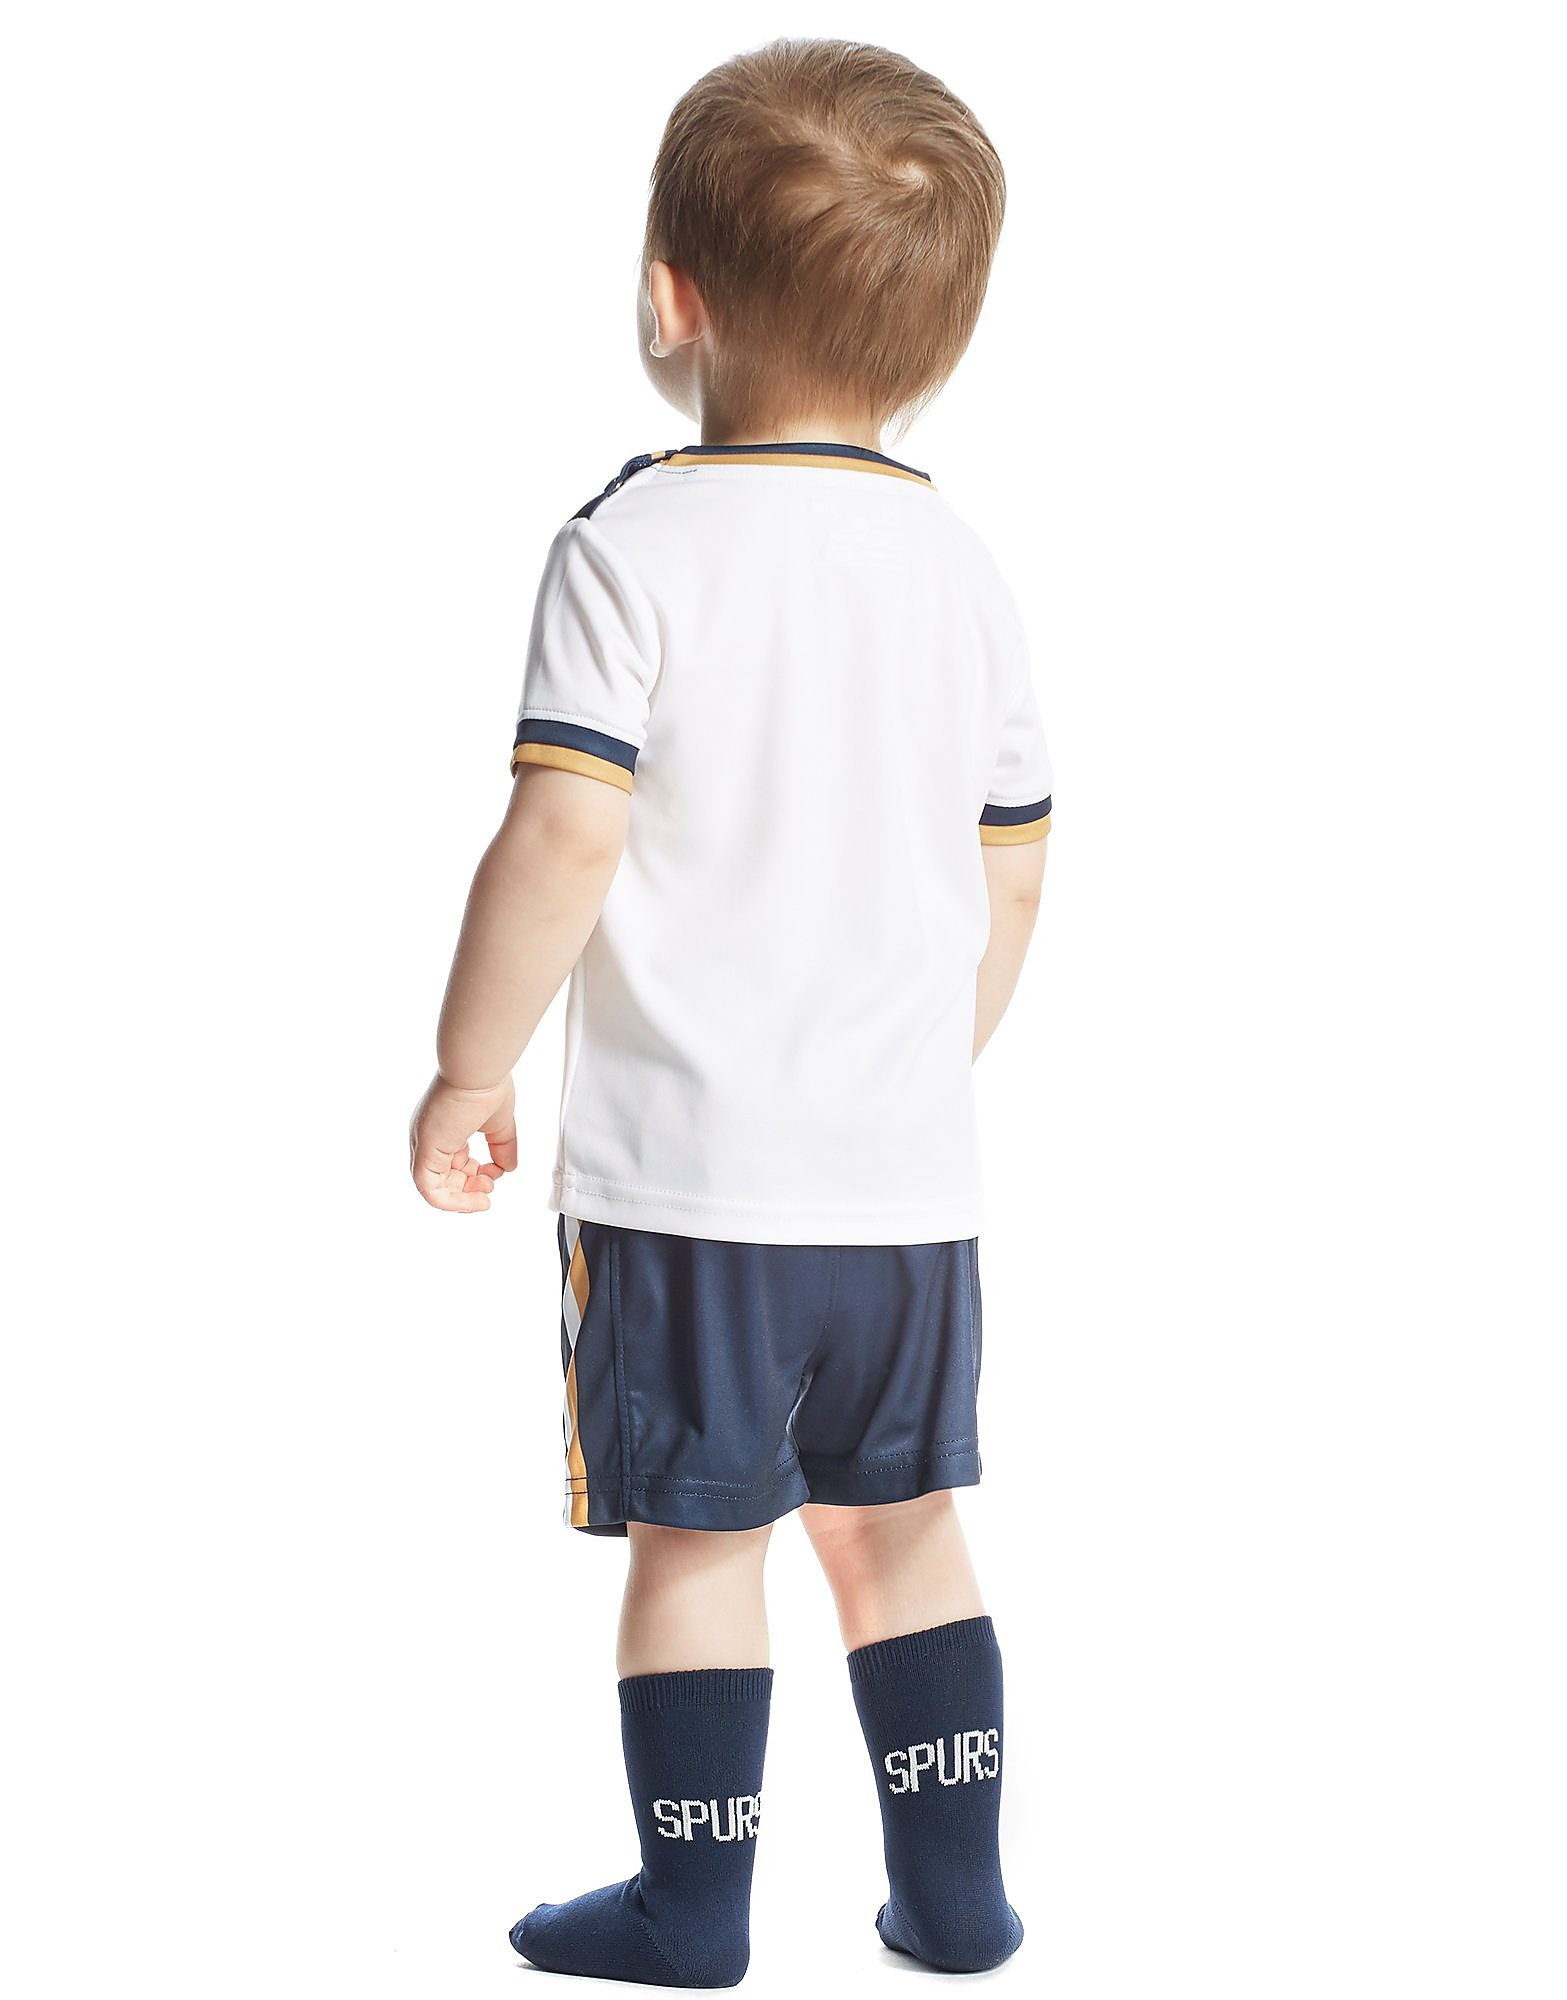 Under Armour Tottenham Hottspur FC 2016/17 Home Kit Infant